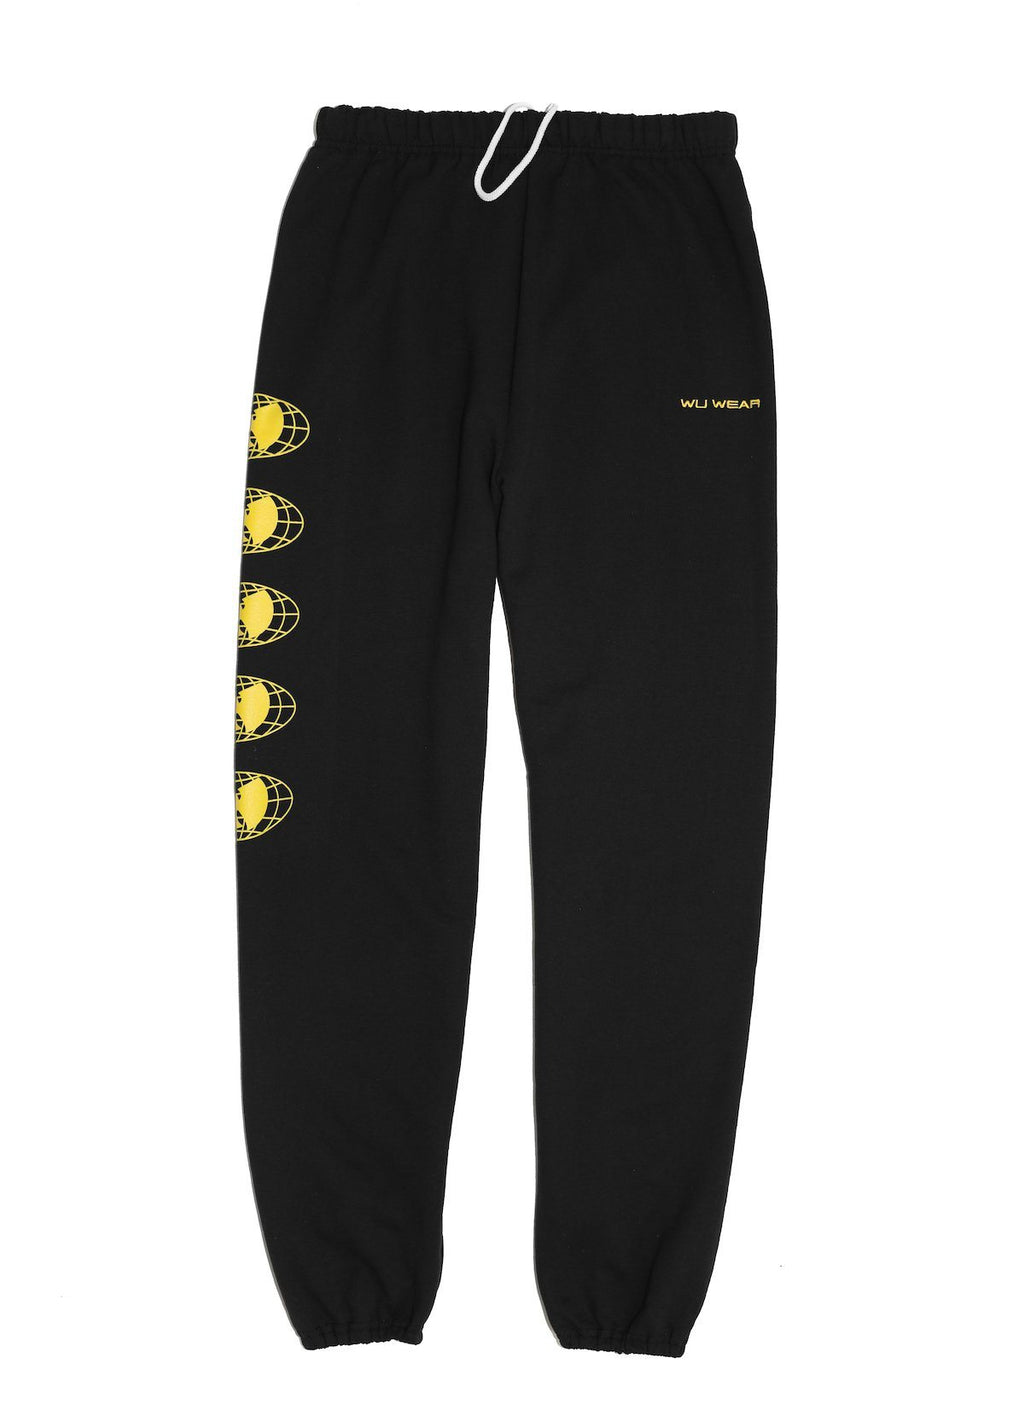 WU WEAR OG SWEATPANTS - BLACK - Wu Wear